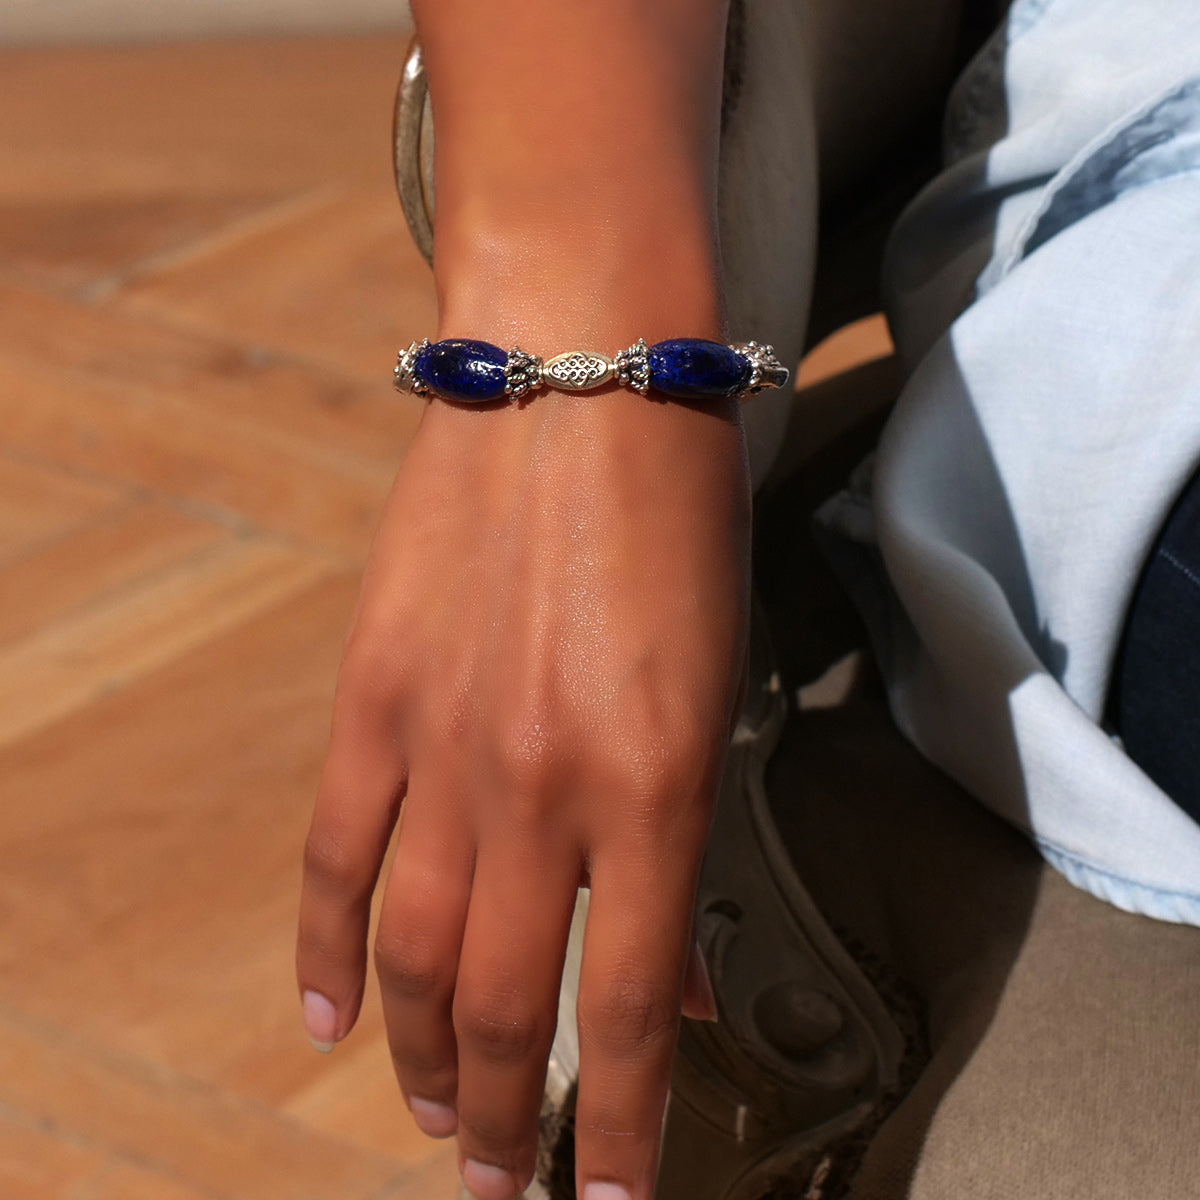 Women's Bracelet in Indigo Blue and Sand Tone Faience - Em Hotep Collection